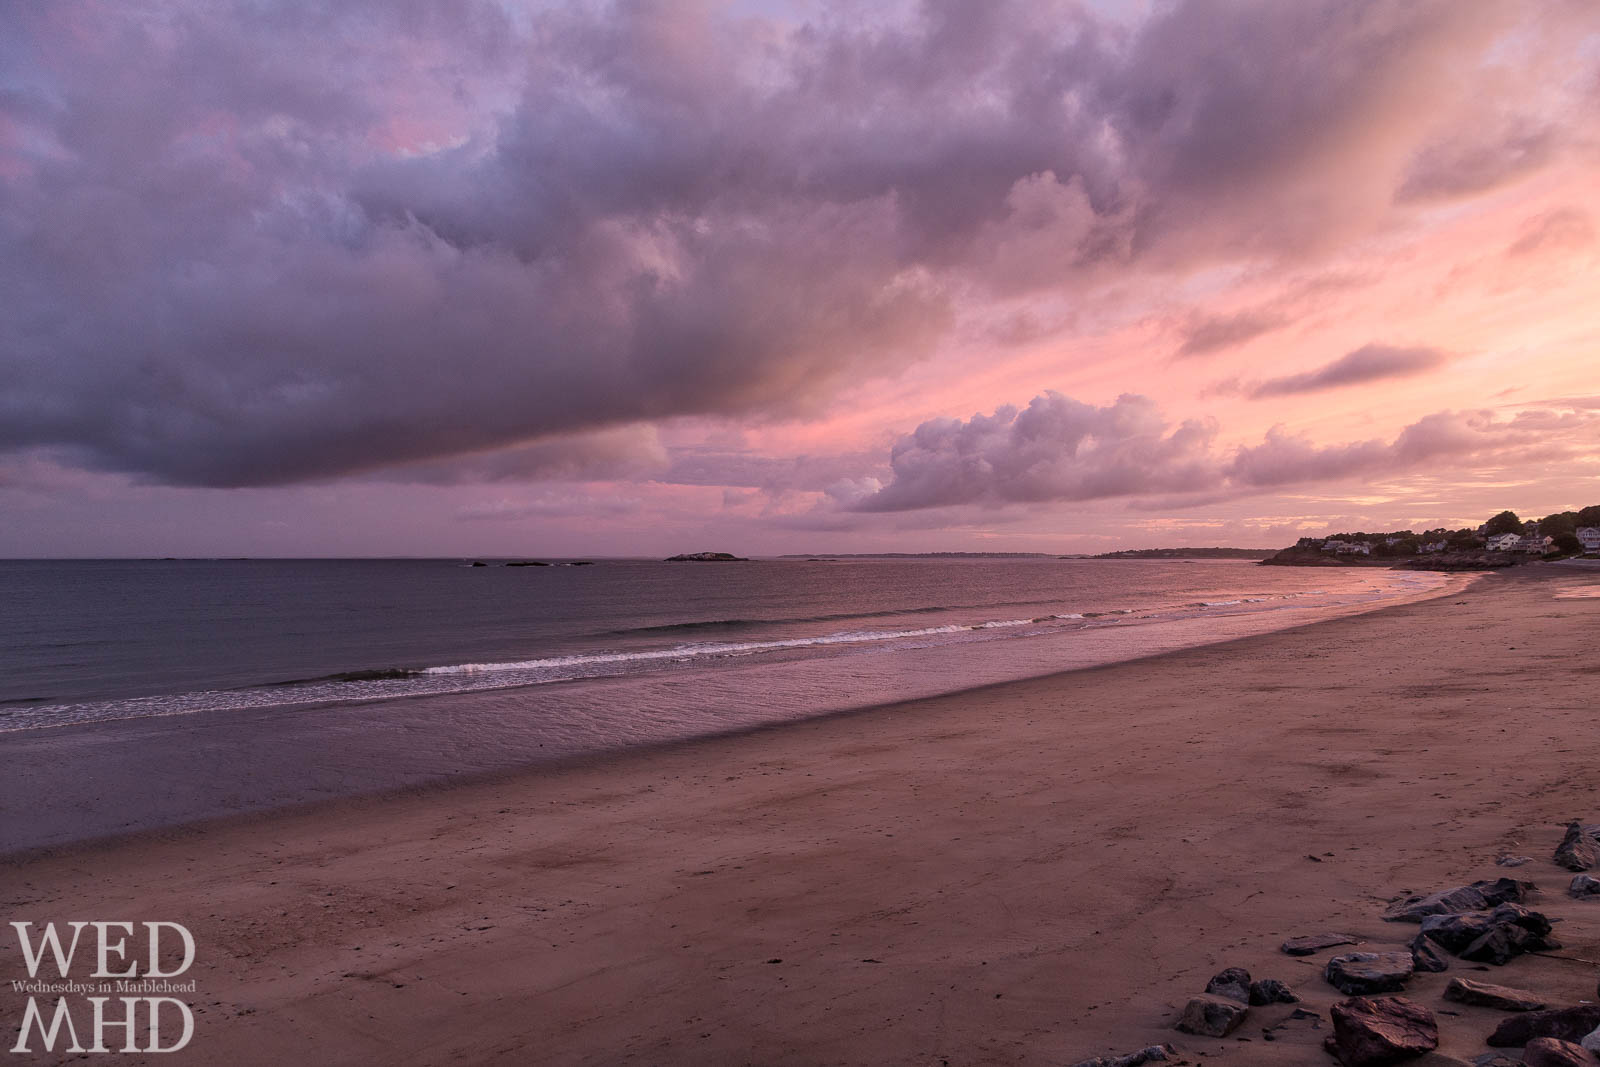 An intense purple sunset takes place over an unusually smooth Devereux Beach